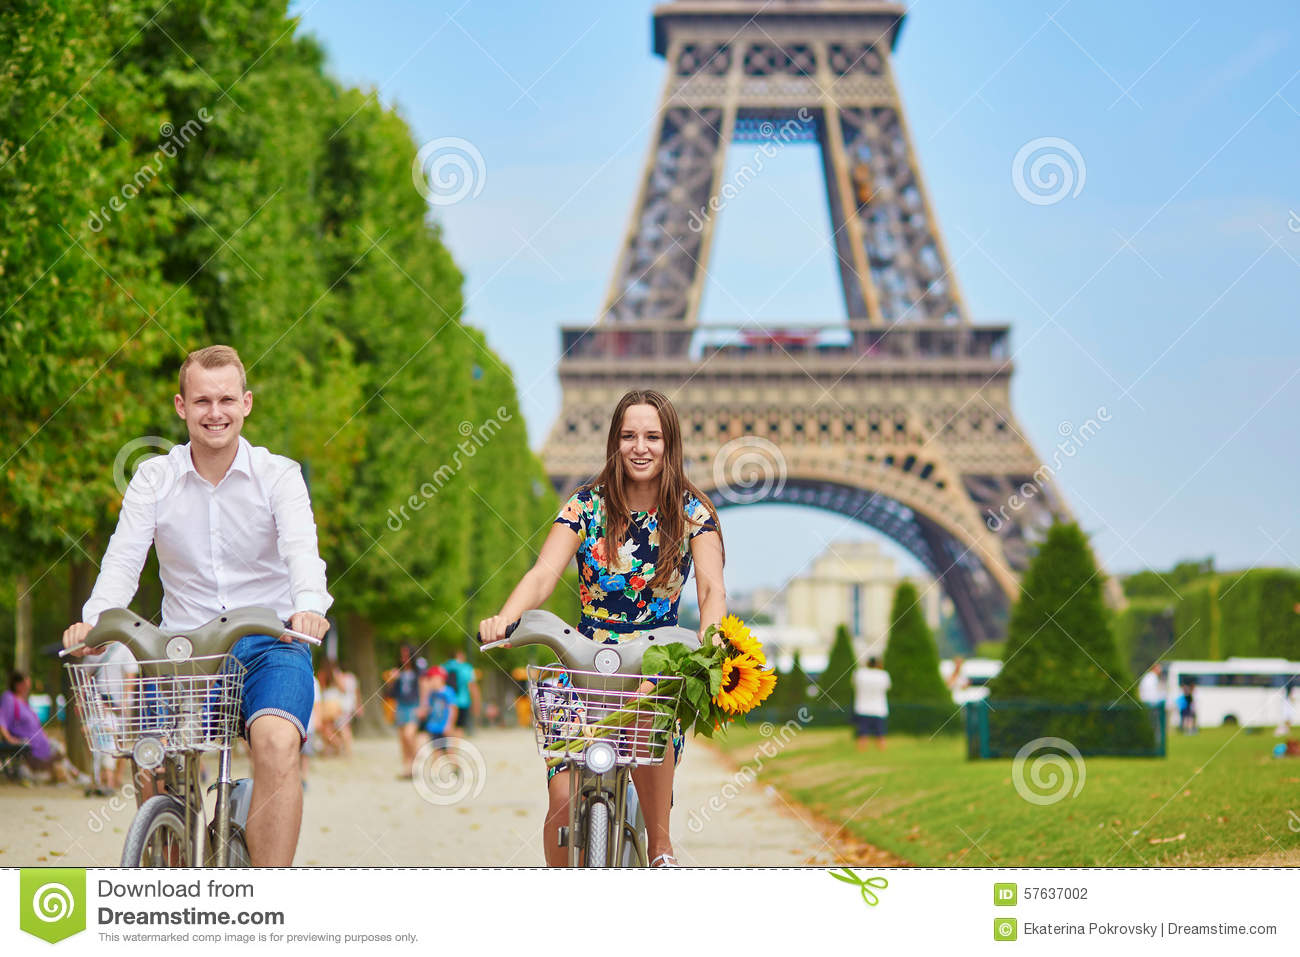 Couple of tourists using bicycles in Paris, France